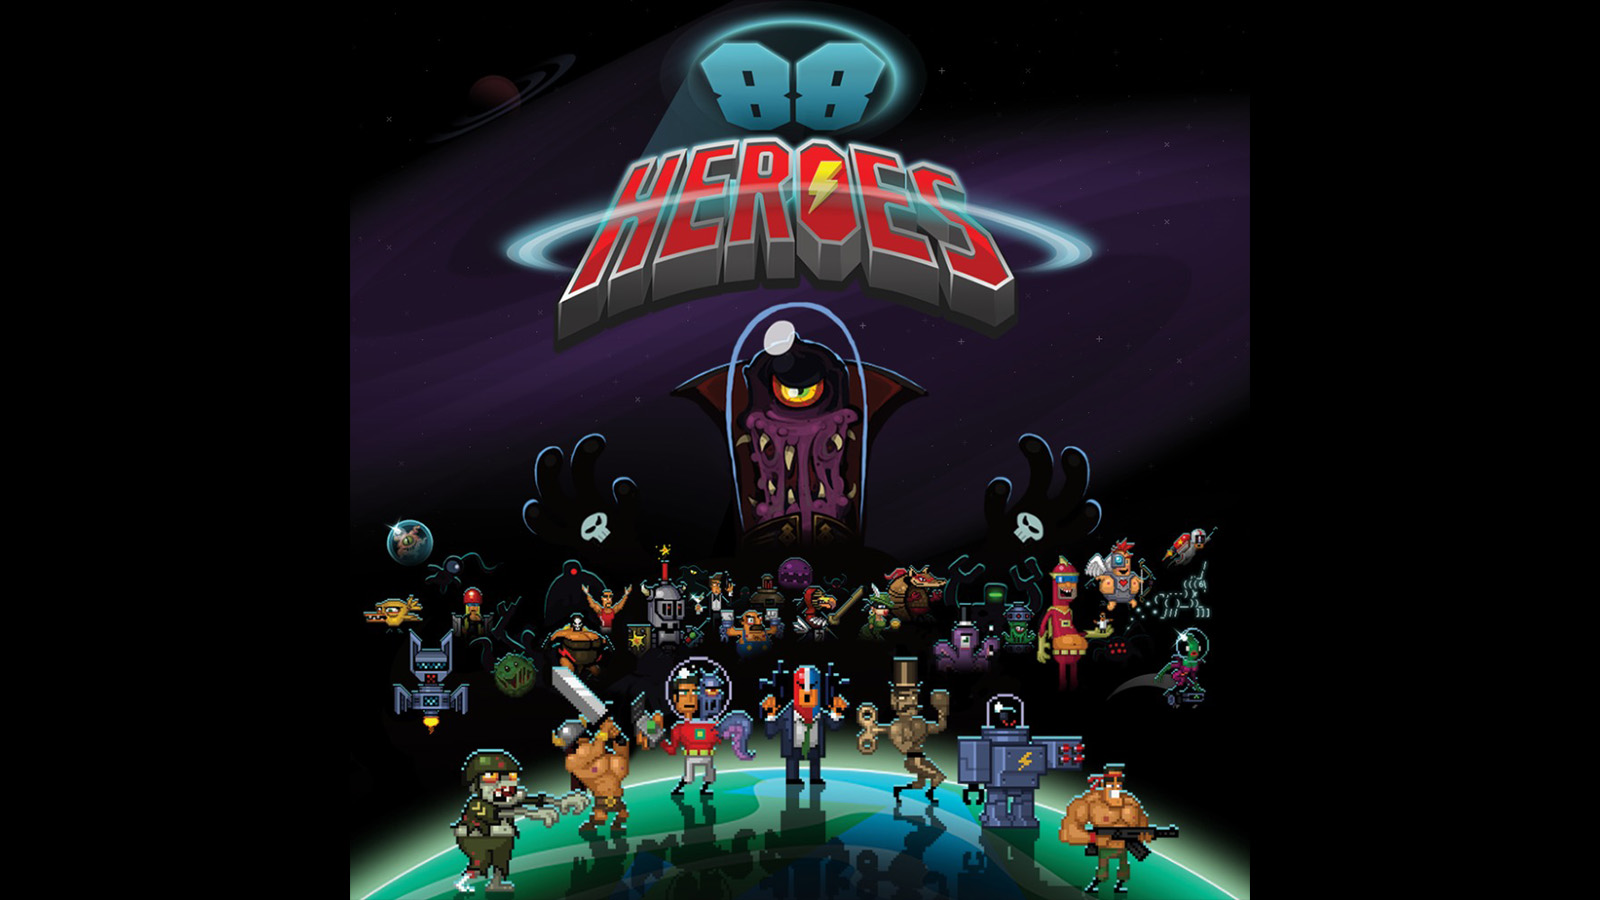 88 Heroes Game | PS4 - PlayStation